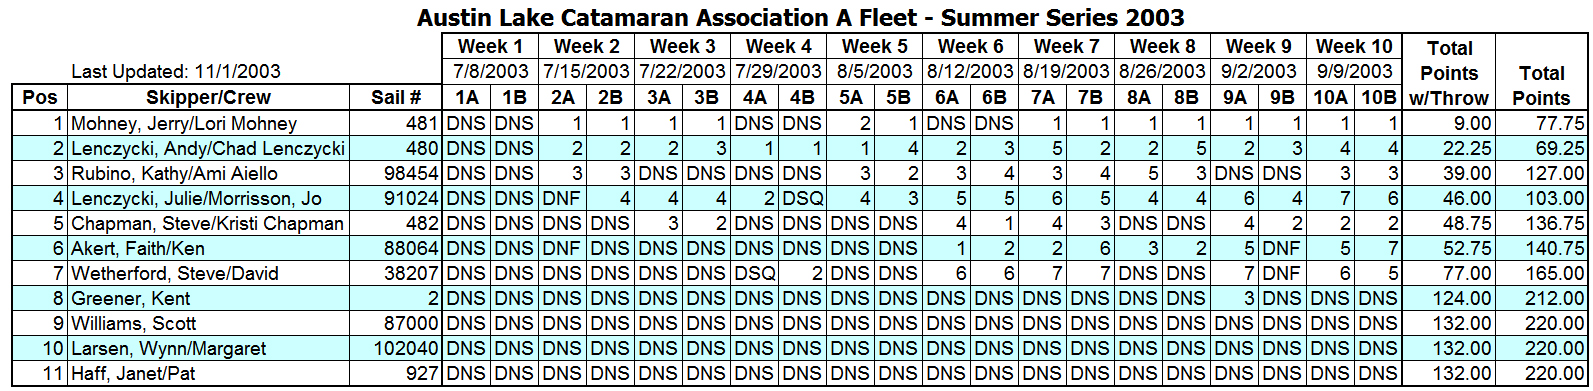 2003 Summer Portsmouth A Fleet Results